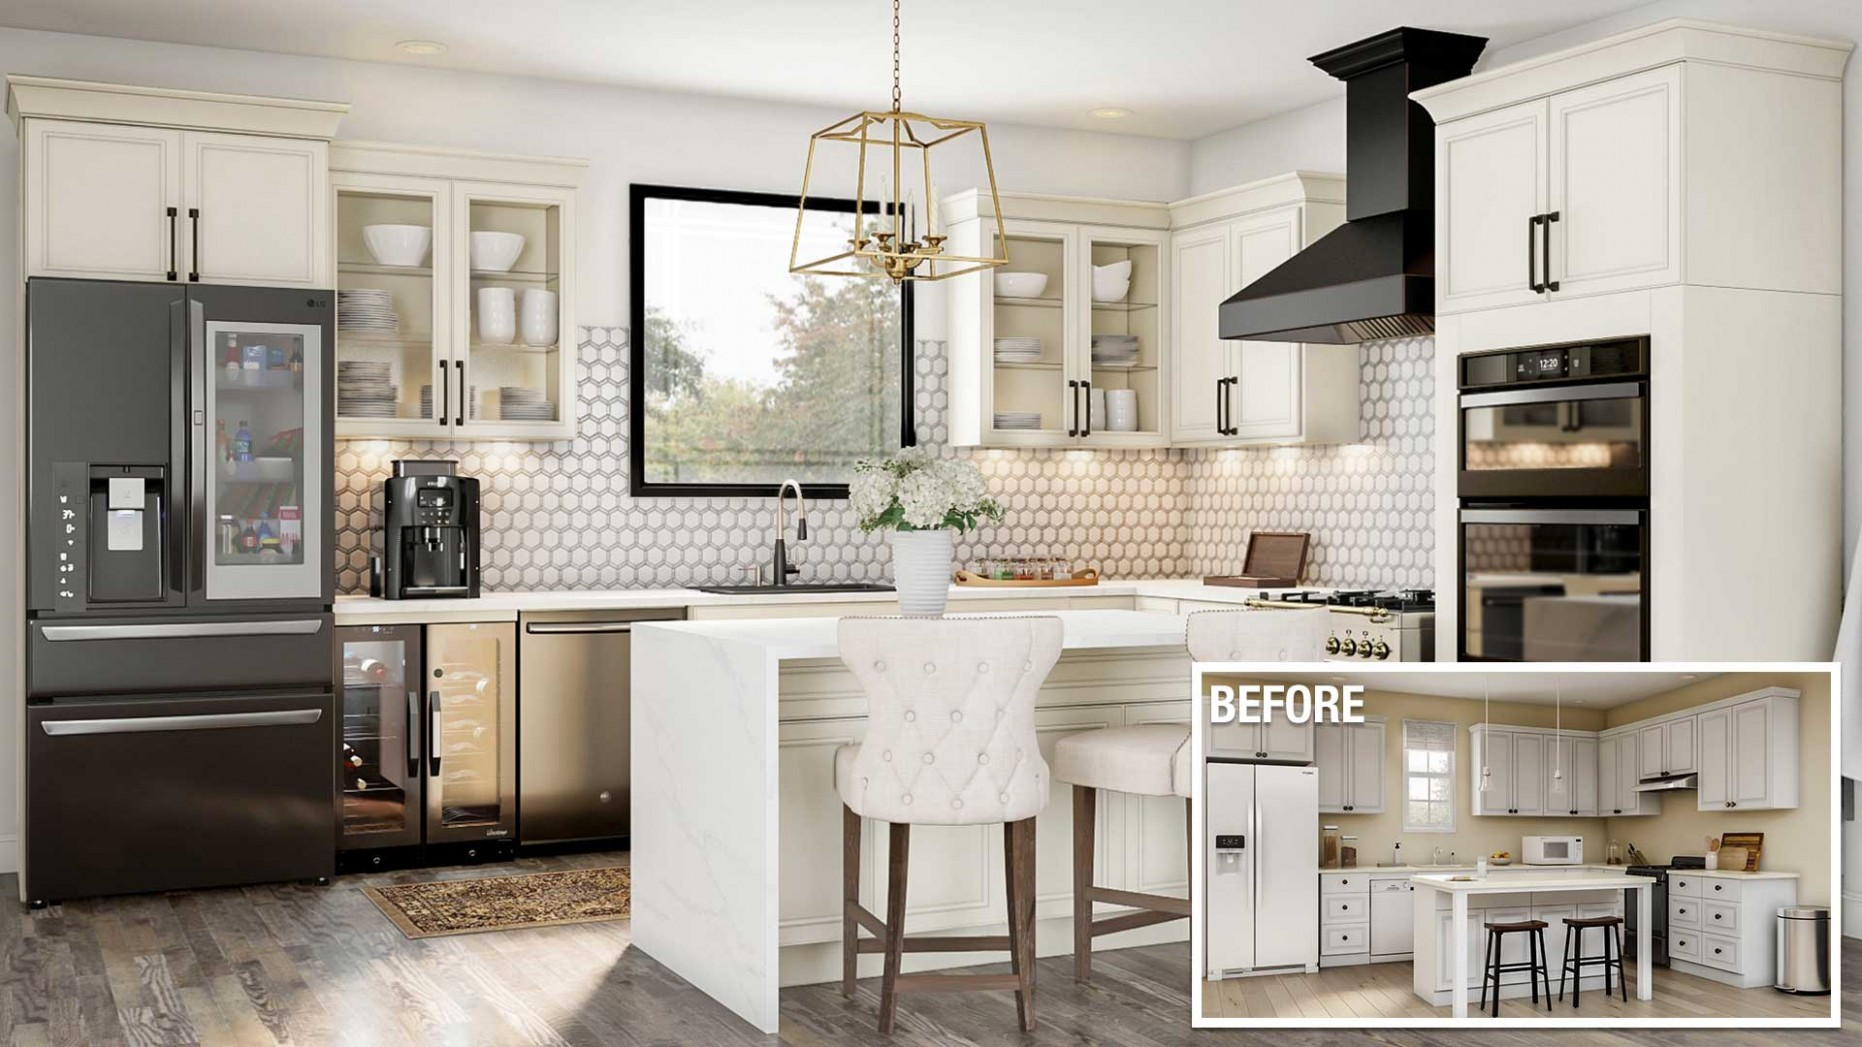 Cost to Remodel a Kitchen - The Home Depot - Cost Upgrade Kitchen Cabinets